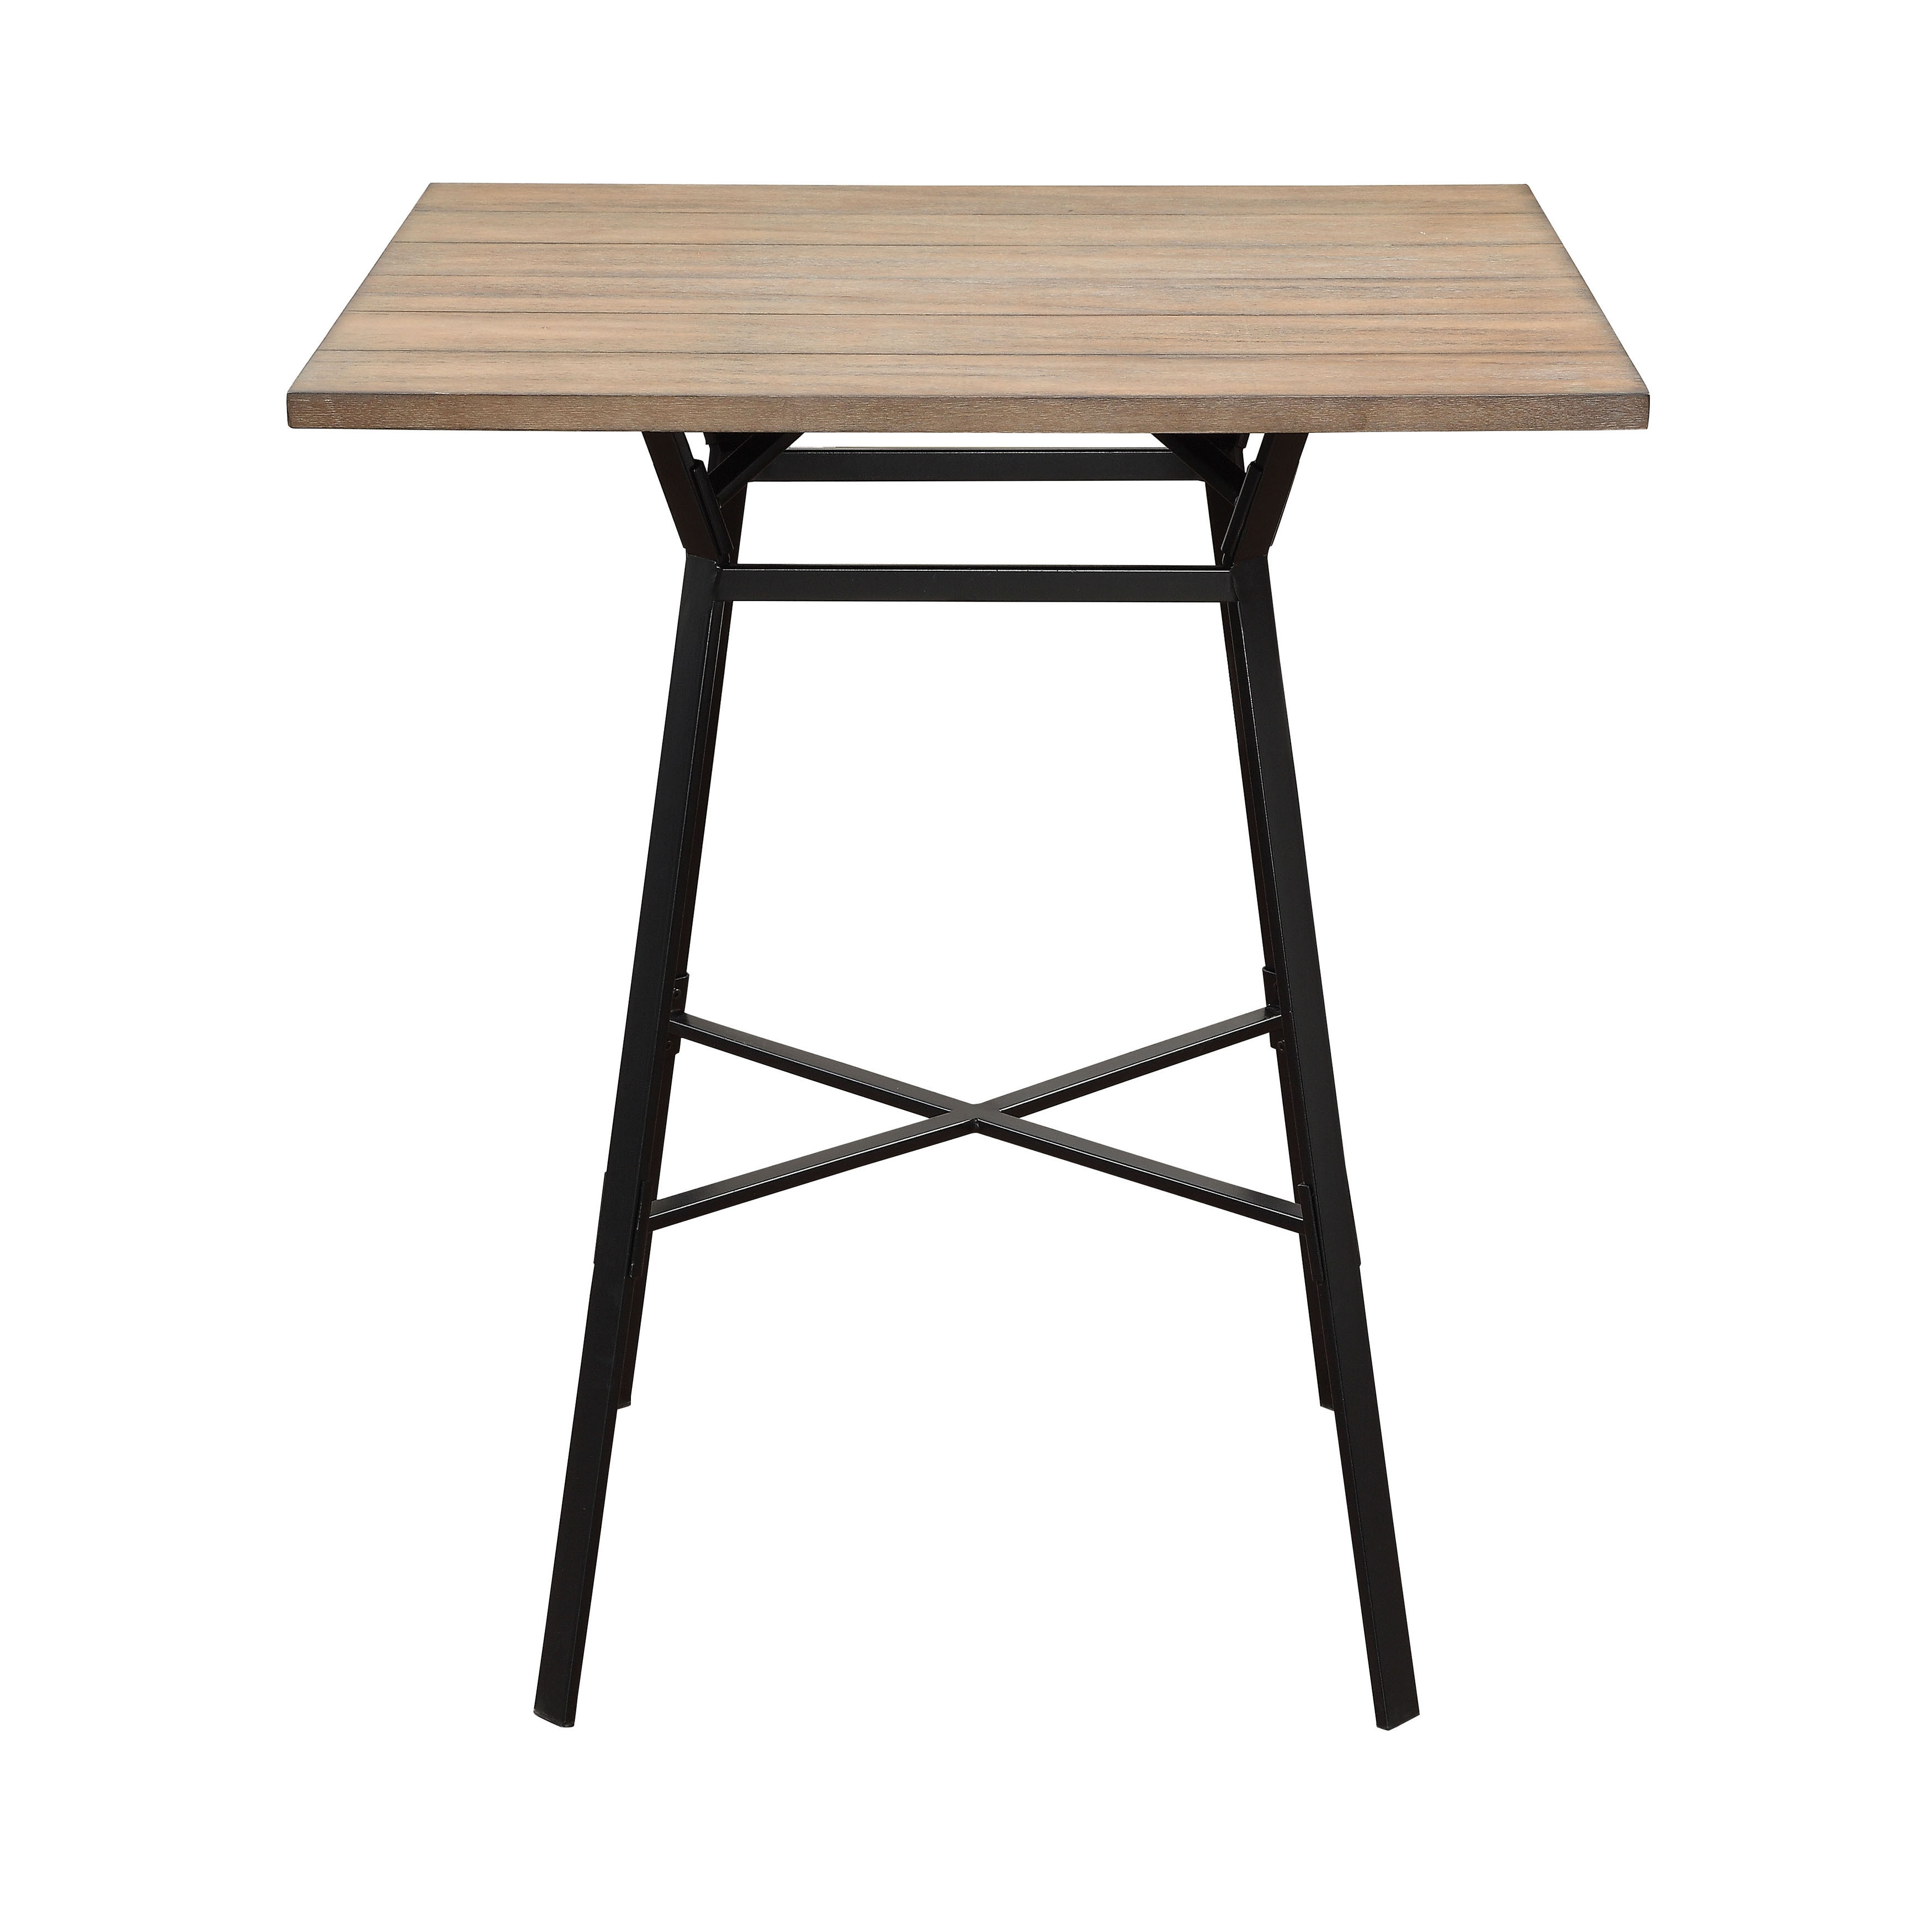 Acme Furniture Dora Metal Wood Bar Height Table and Stool (5-piece Set) - Free Shipping Today - Overstock.com - 20585049  sc 1 st  Overstock & Acme Furniture Dora Metal Wood Bar Height Table and Stool (5-piece ...